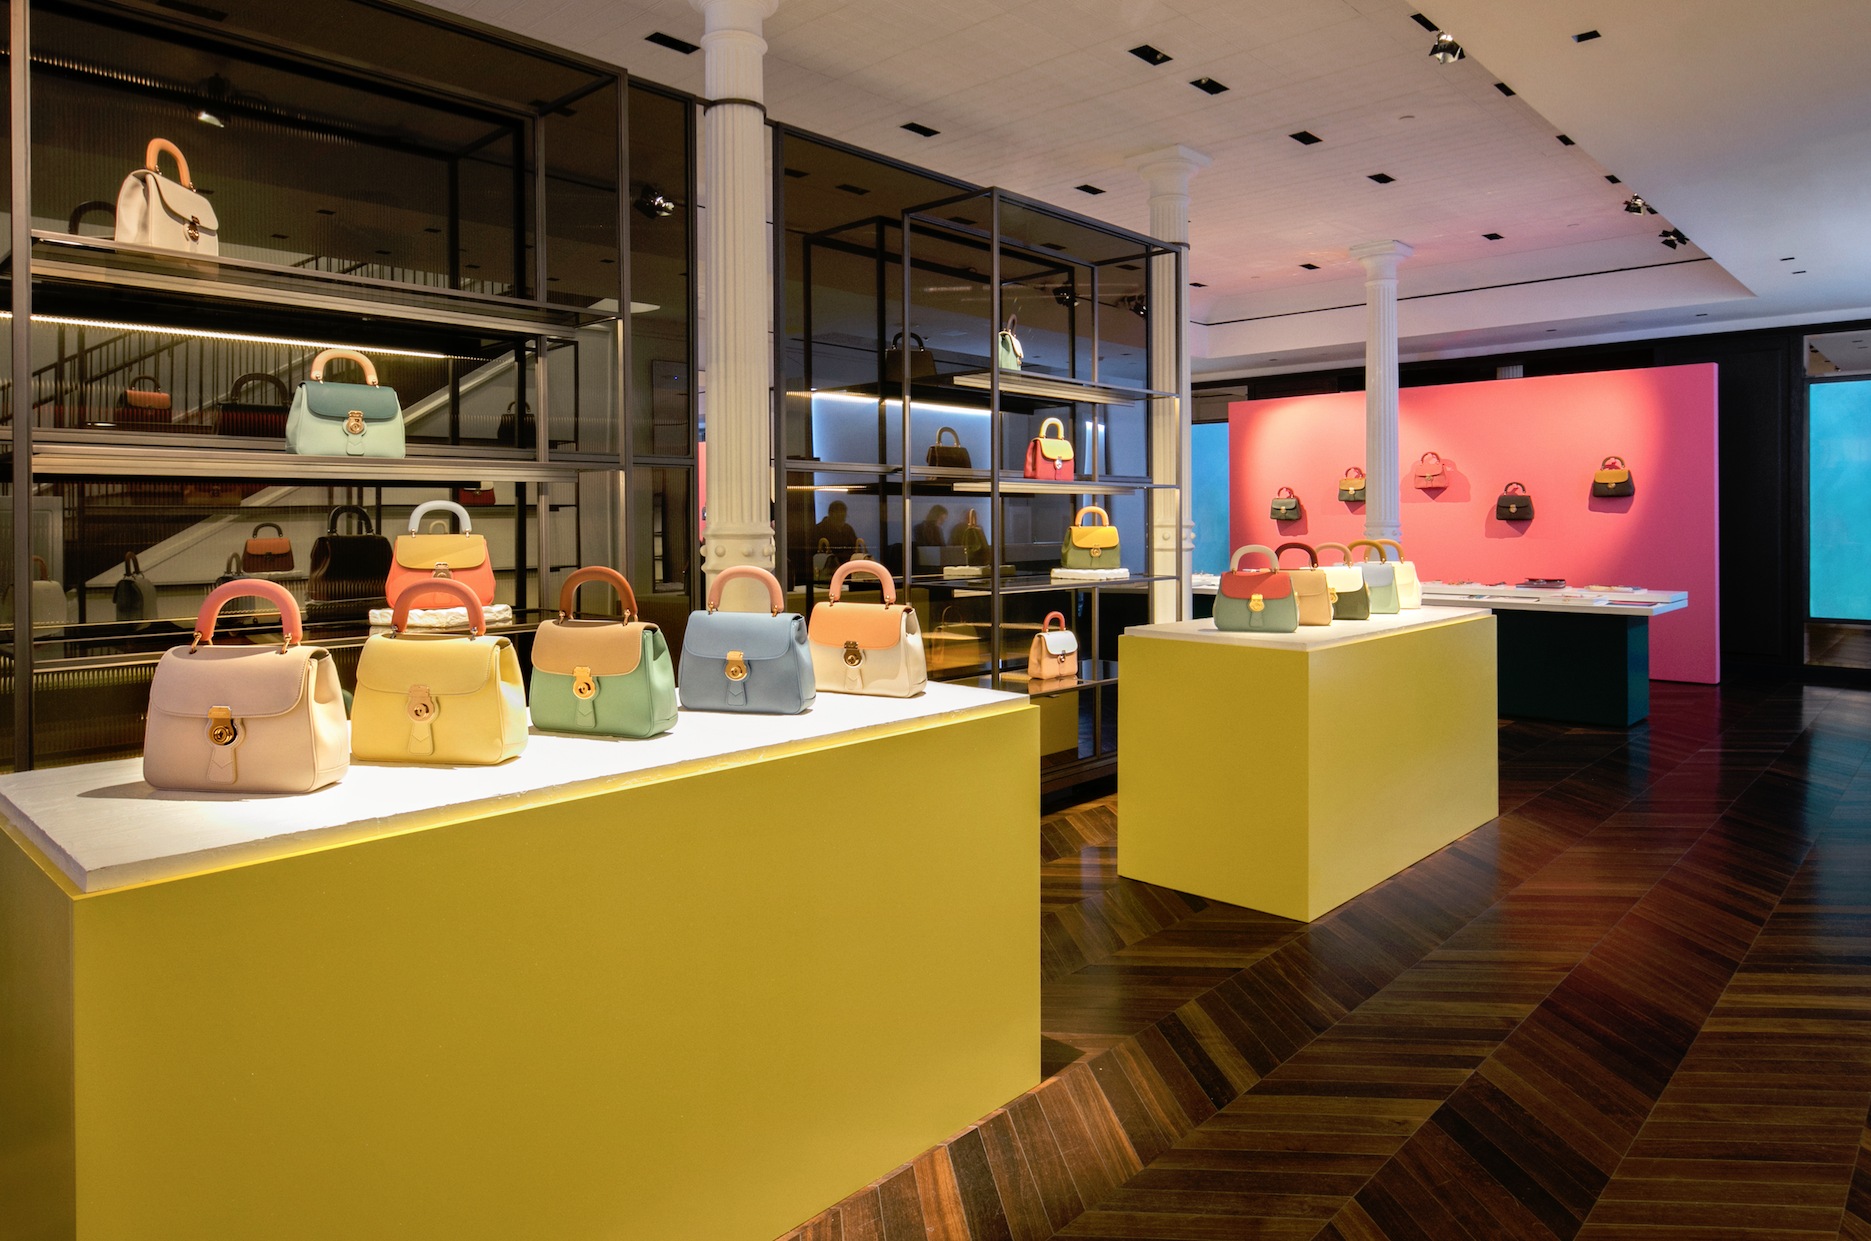 b6d6c5d40f Burberry Launches DK88 Bag Experience in New York | Elite Traveler